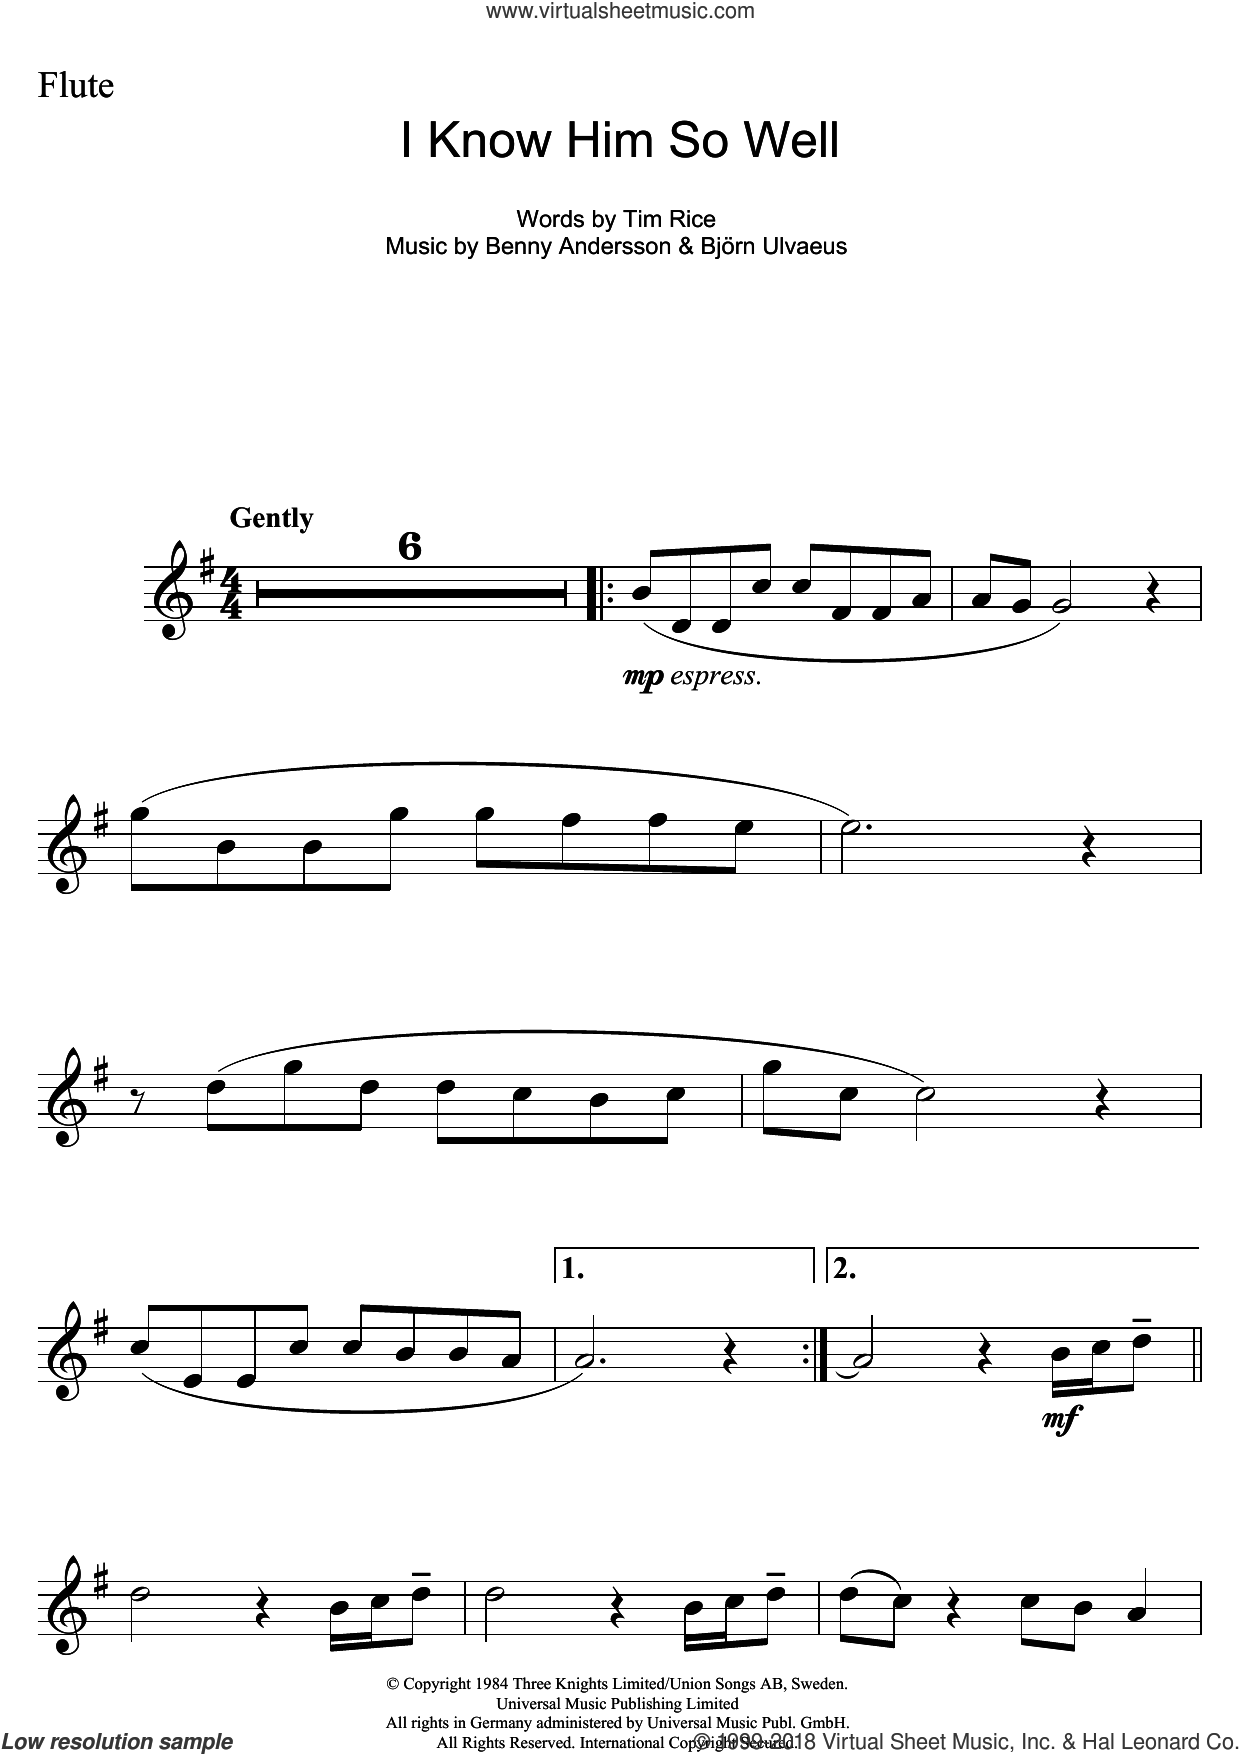 I Know Him So Well (from Chess) sheet music for flute solo by Elaine Paige, Benny Andersson, Bjorn Ulvaeus and Tim Rice, intermediate skill level